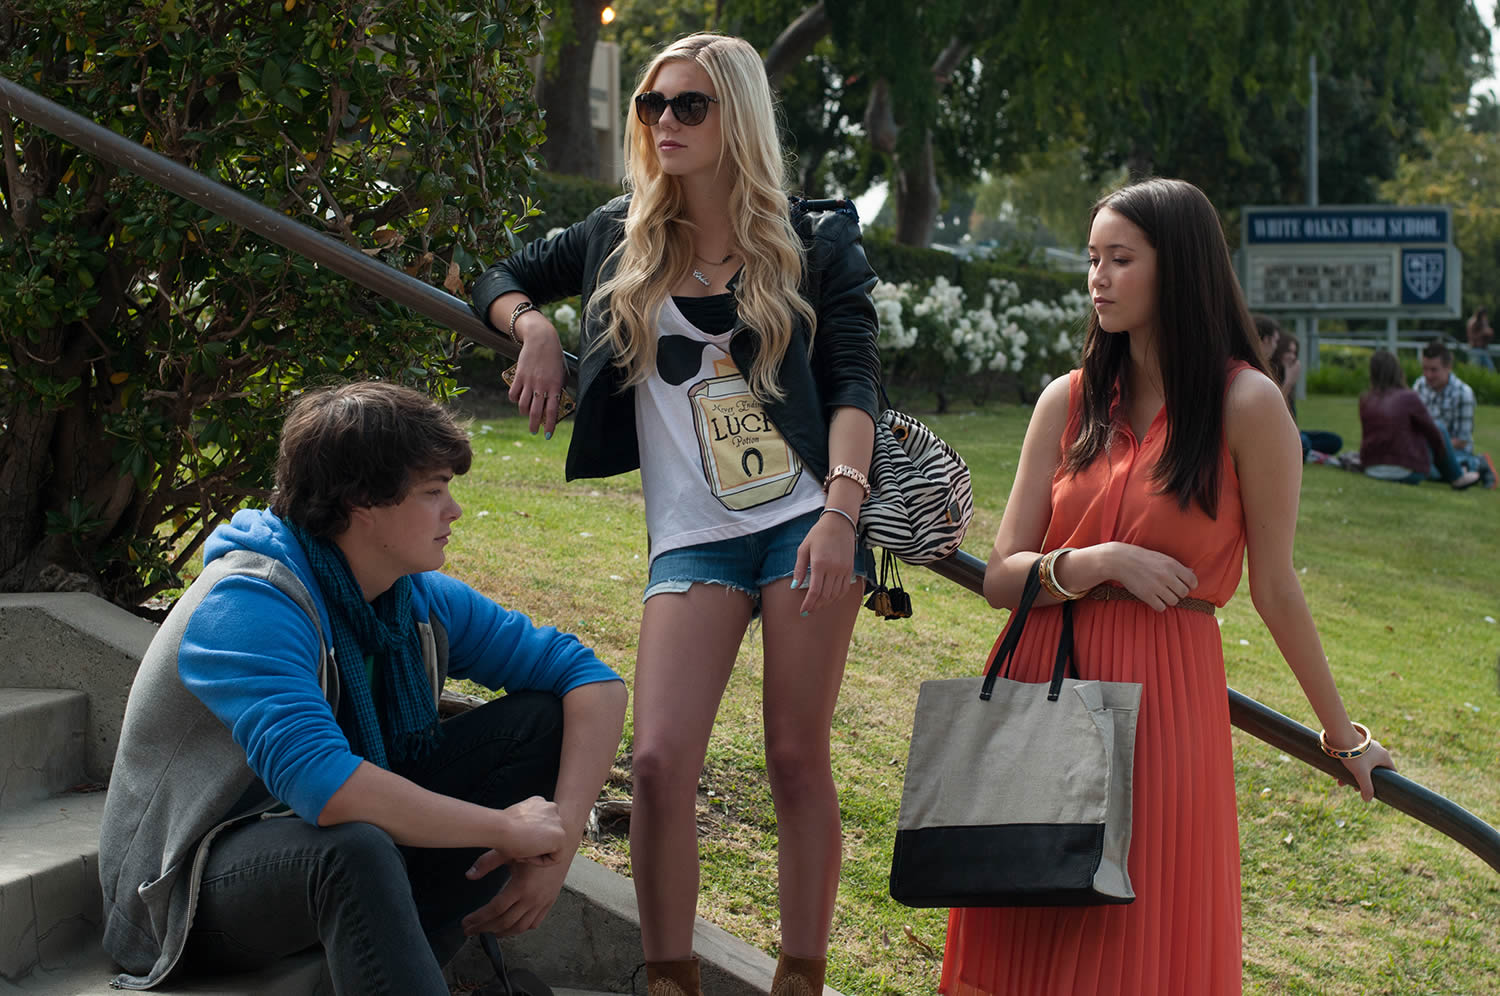 the bratty teens from the bling ring